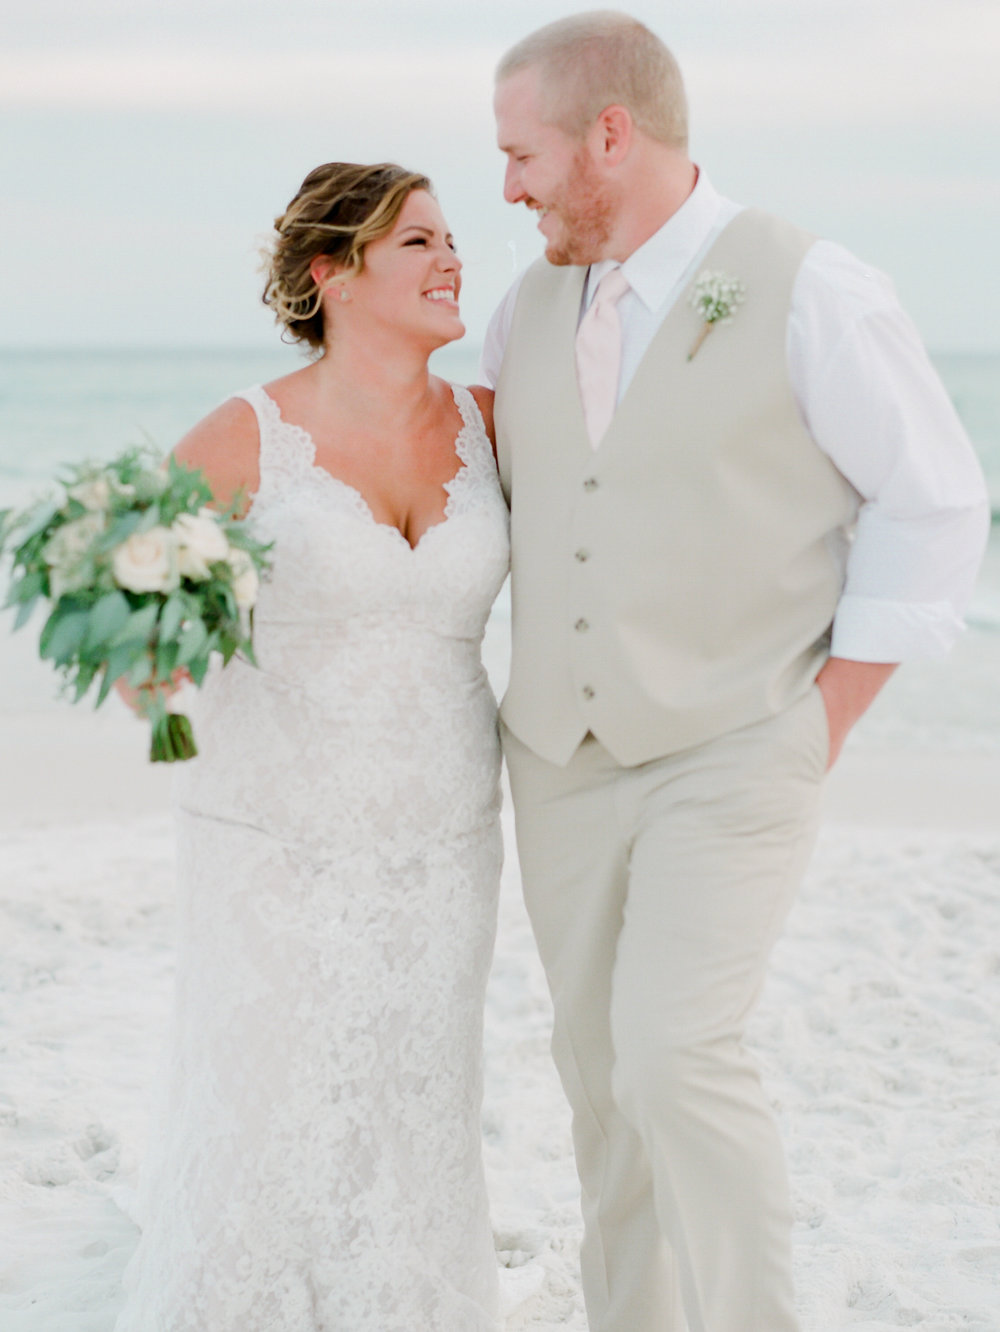 30a wedding photographer